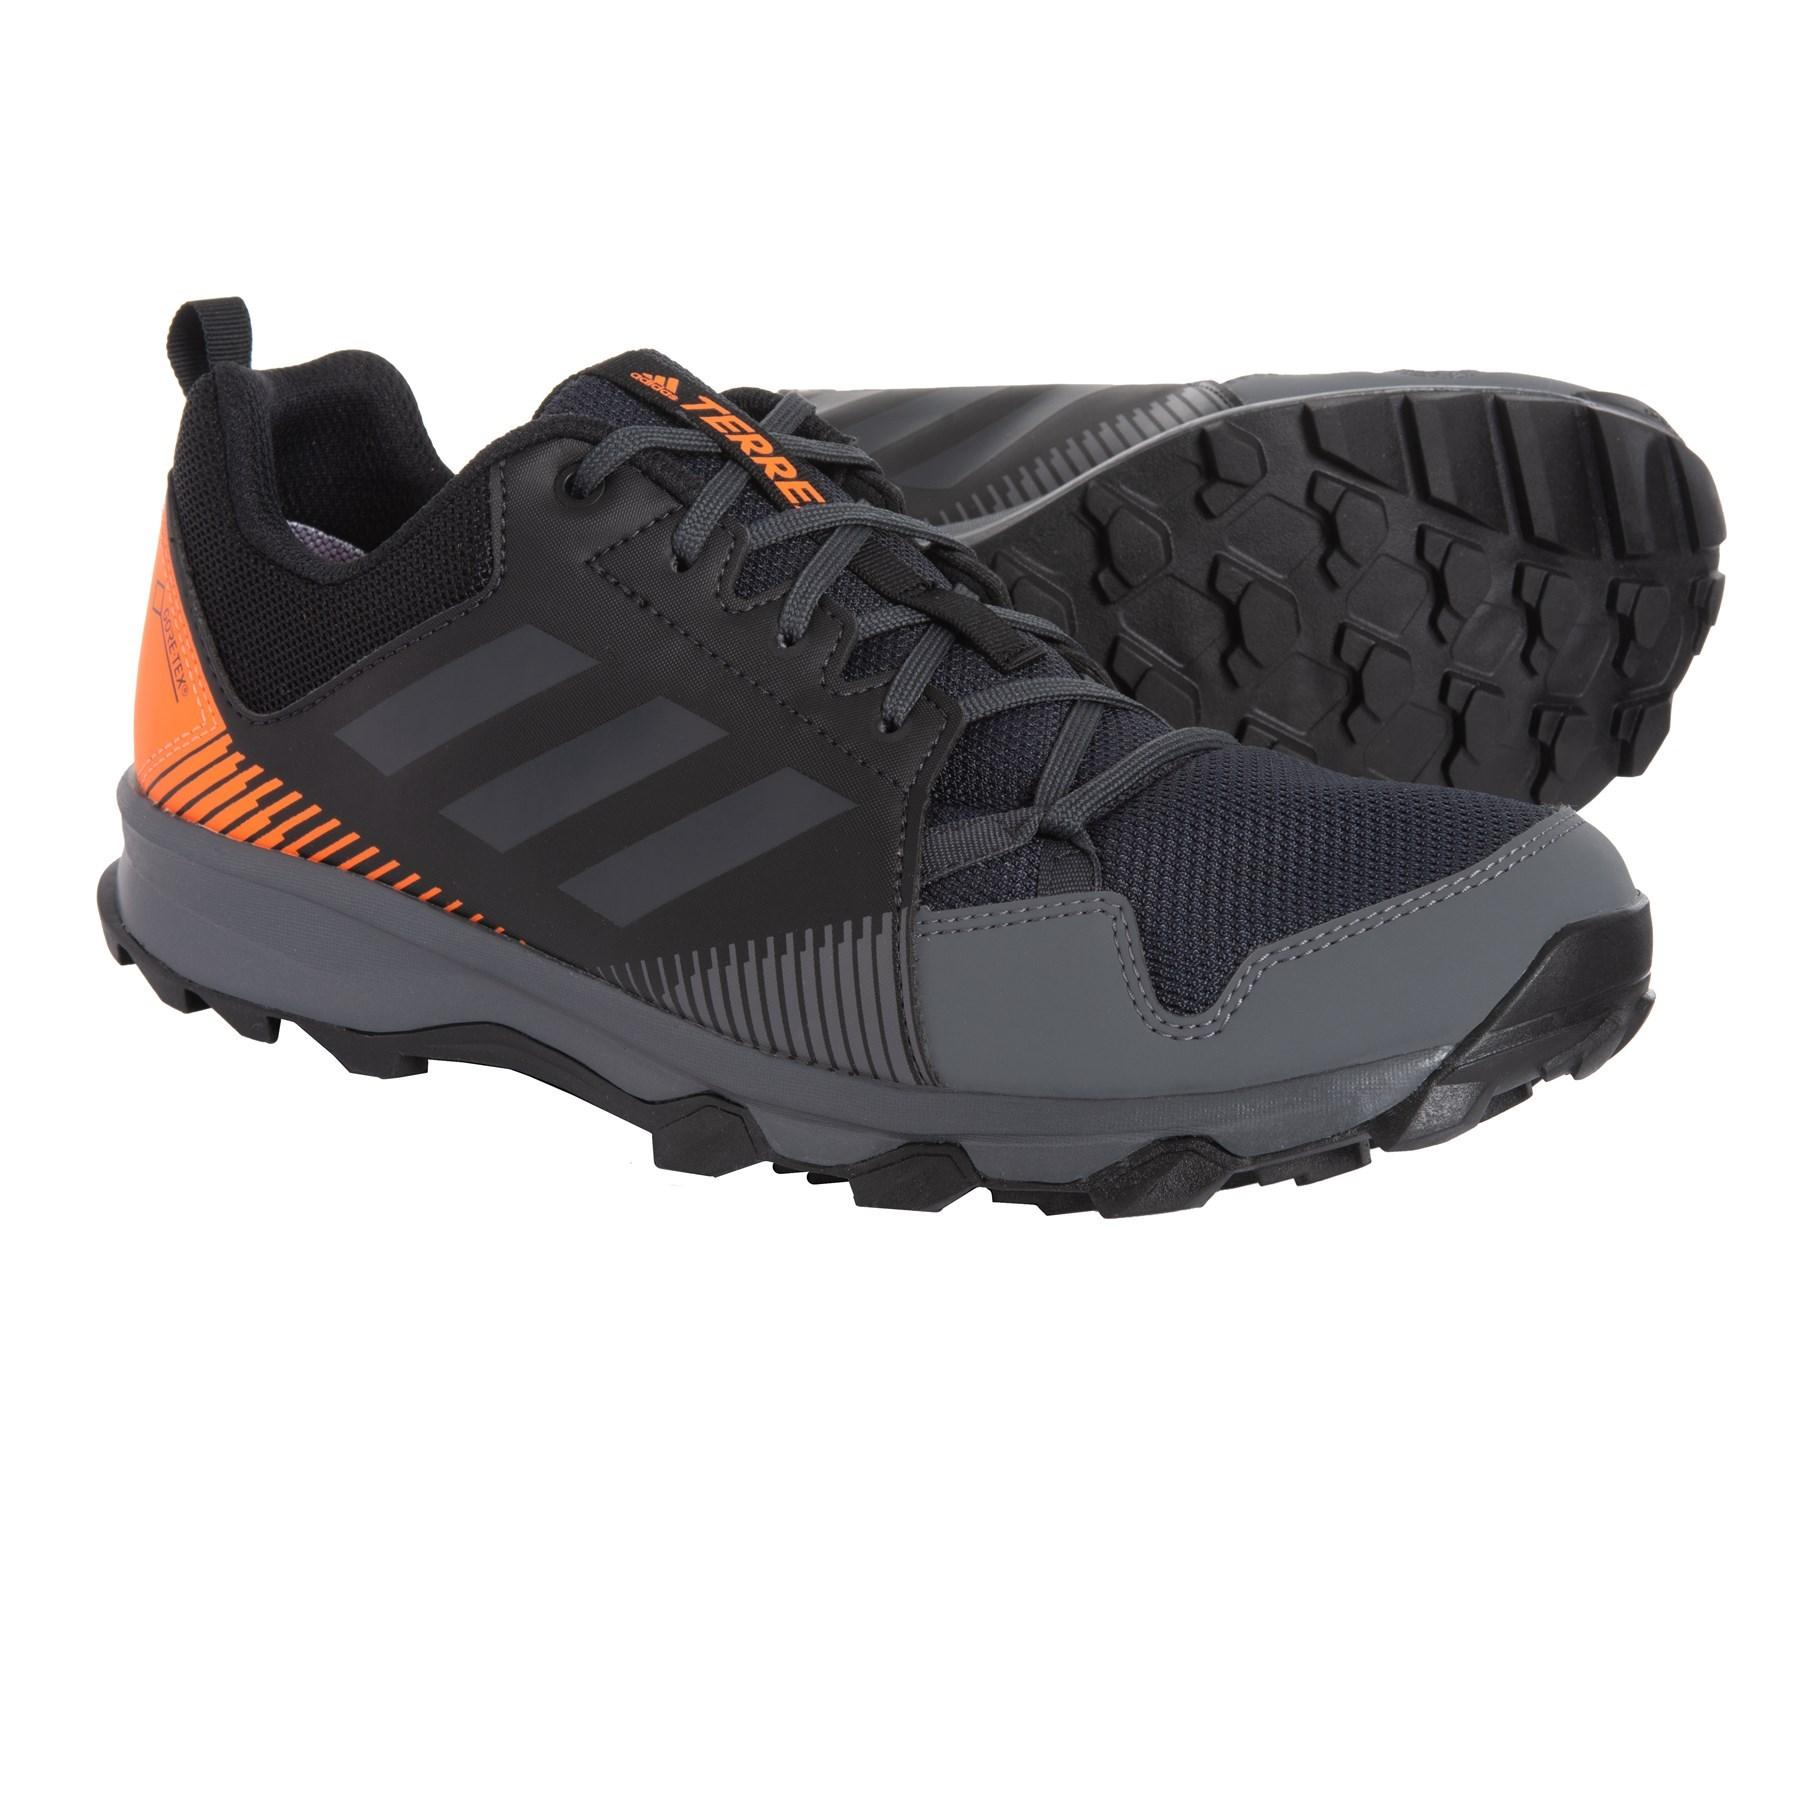 43d7dc6abb2 Lyst - adidas Terrex Tracerocker Gore-tex® Running Shoes in Black ...